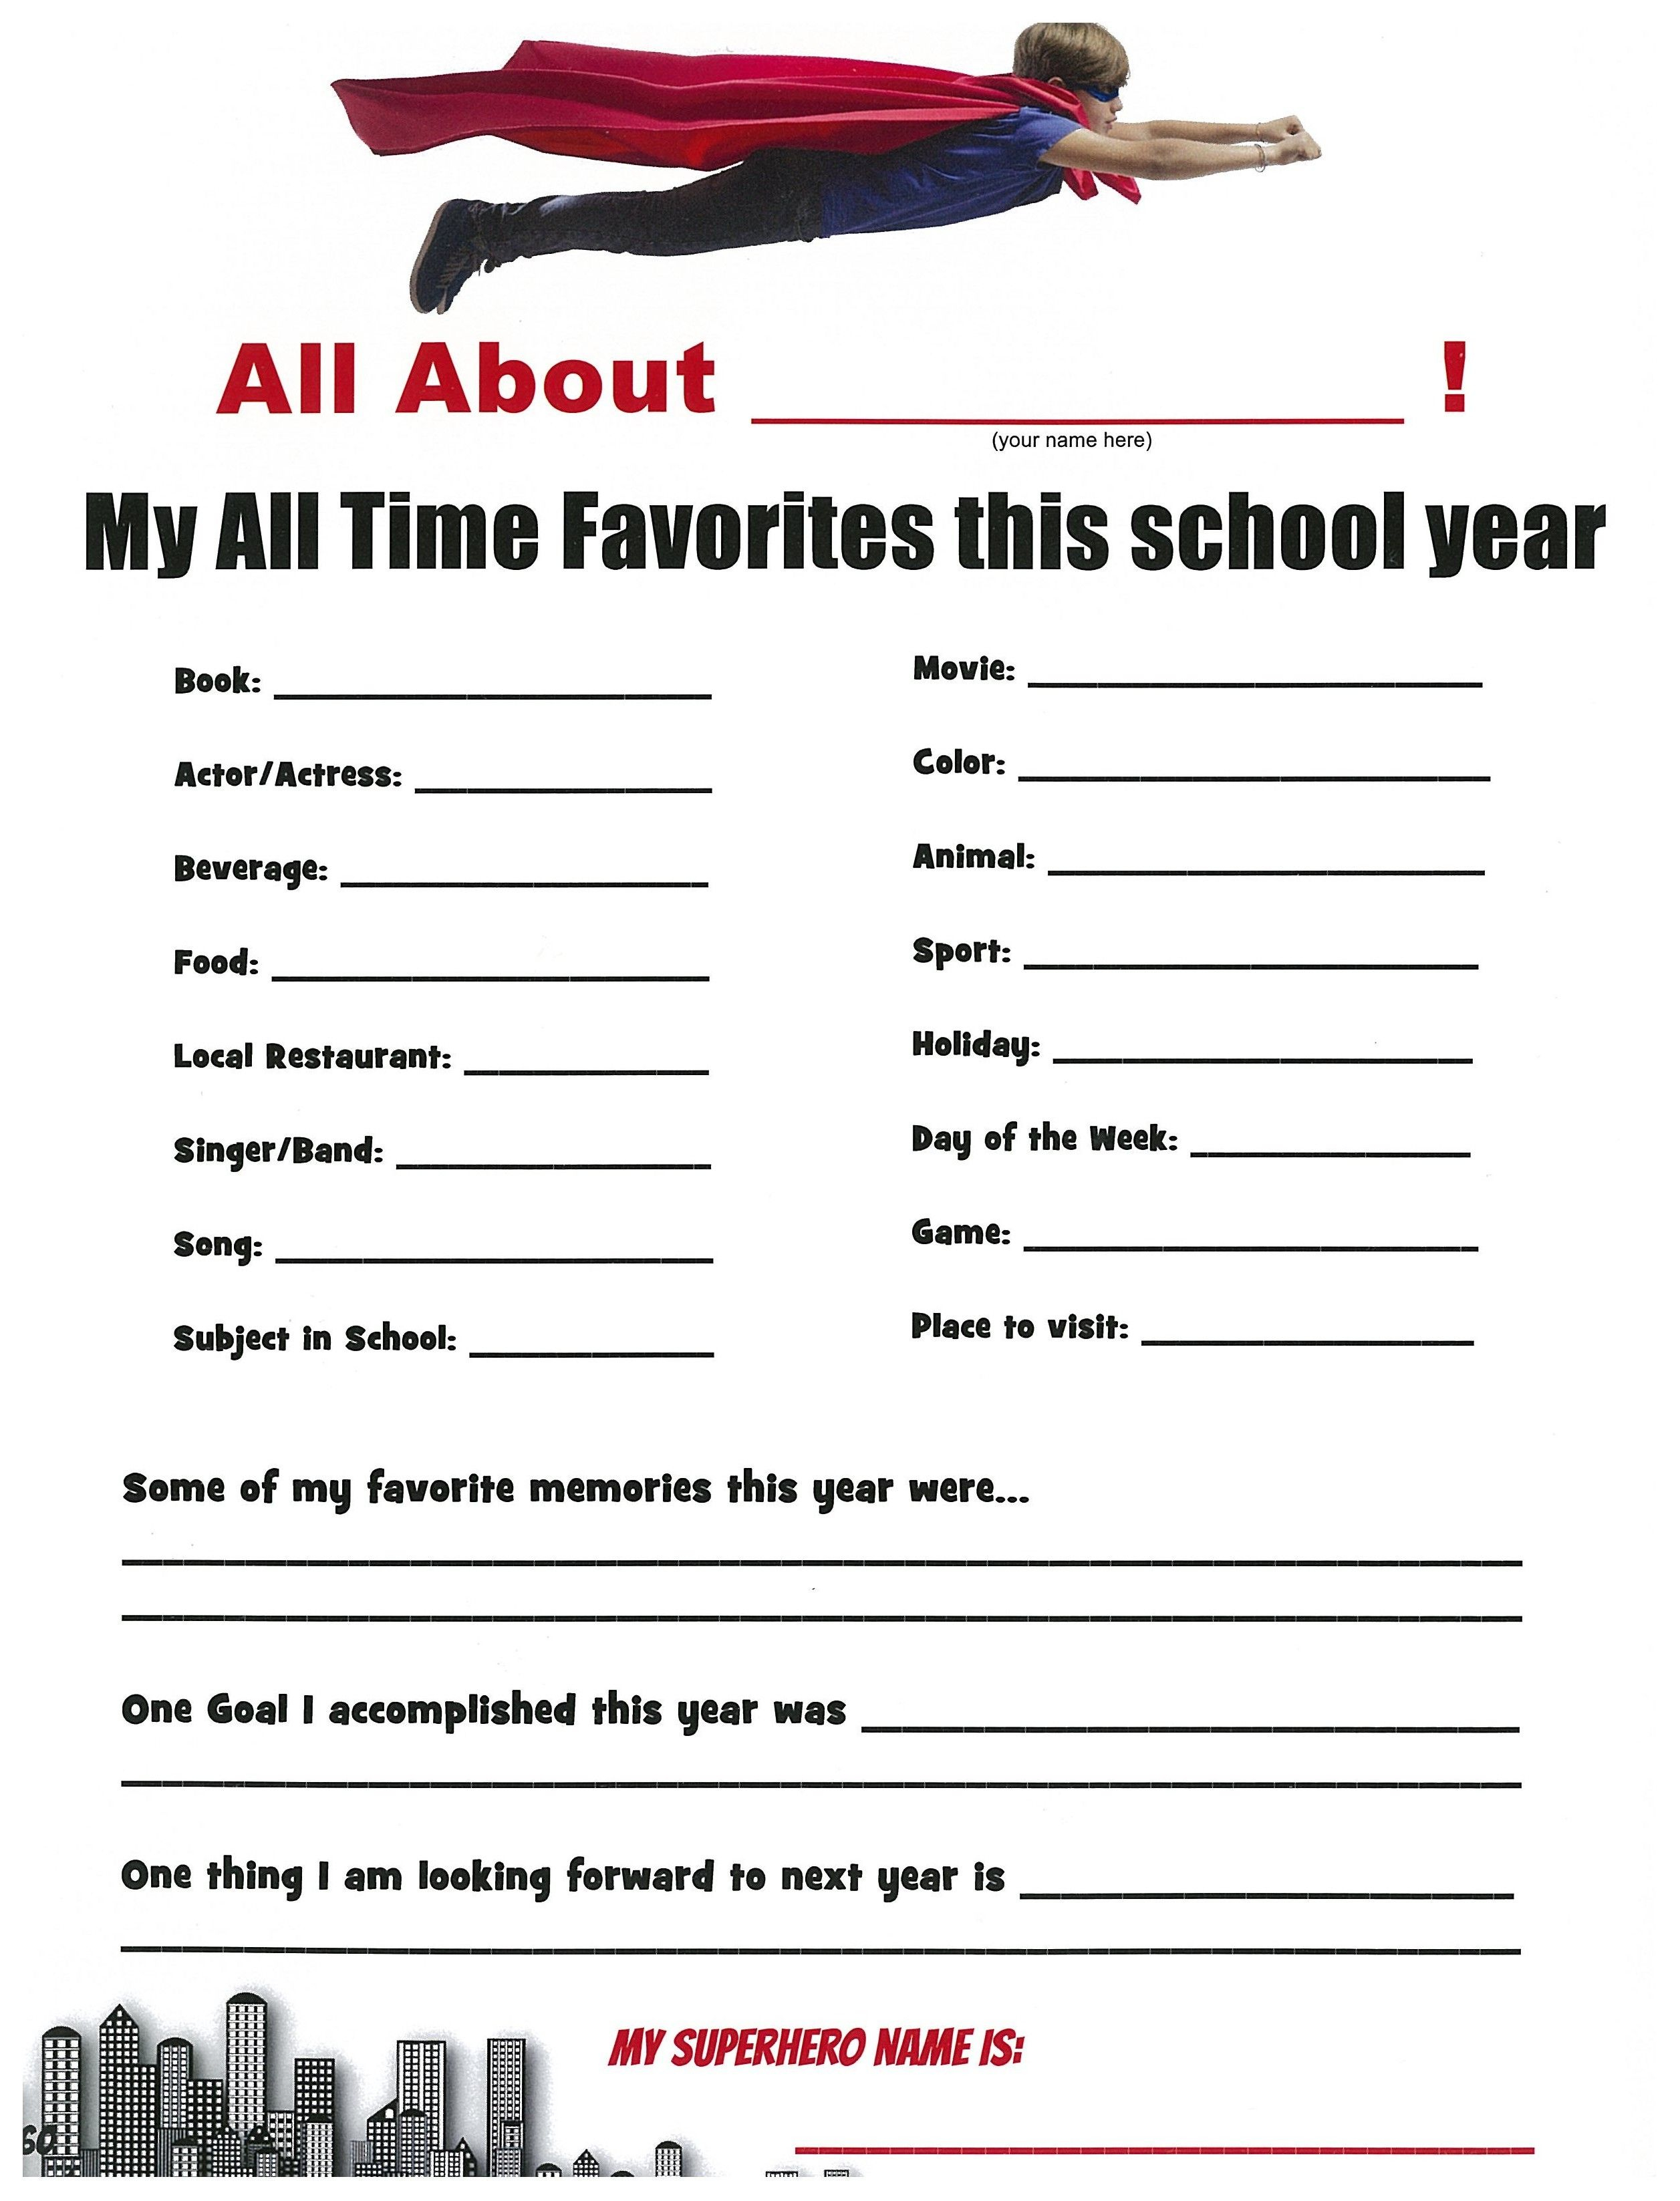 A Cute Idea For A Superhero Themed School Yearbook Page. The Kids | Yearbook Printable Worksheets